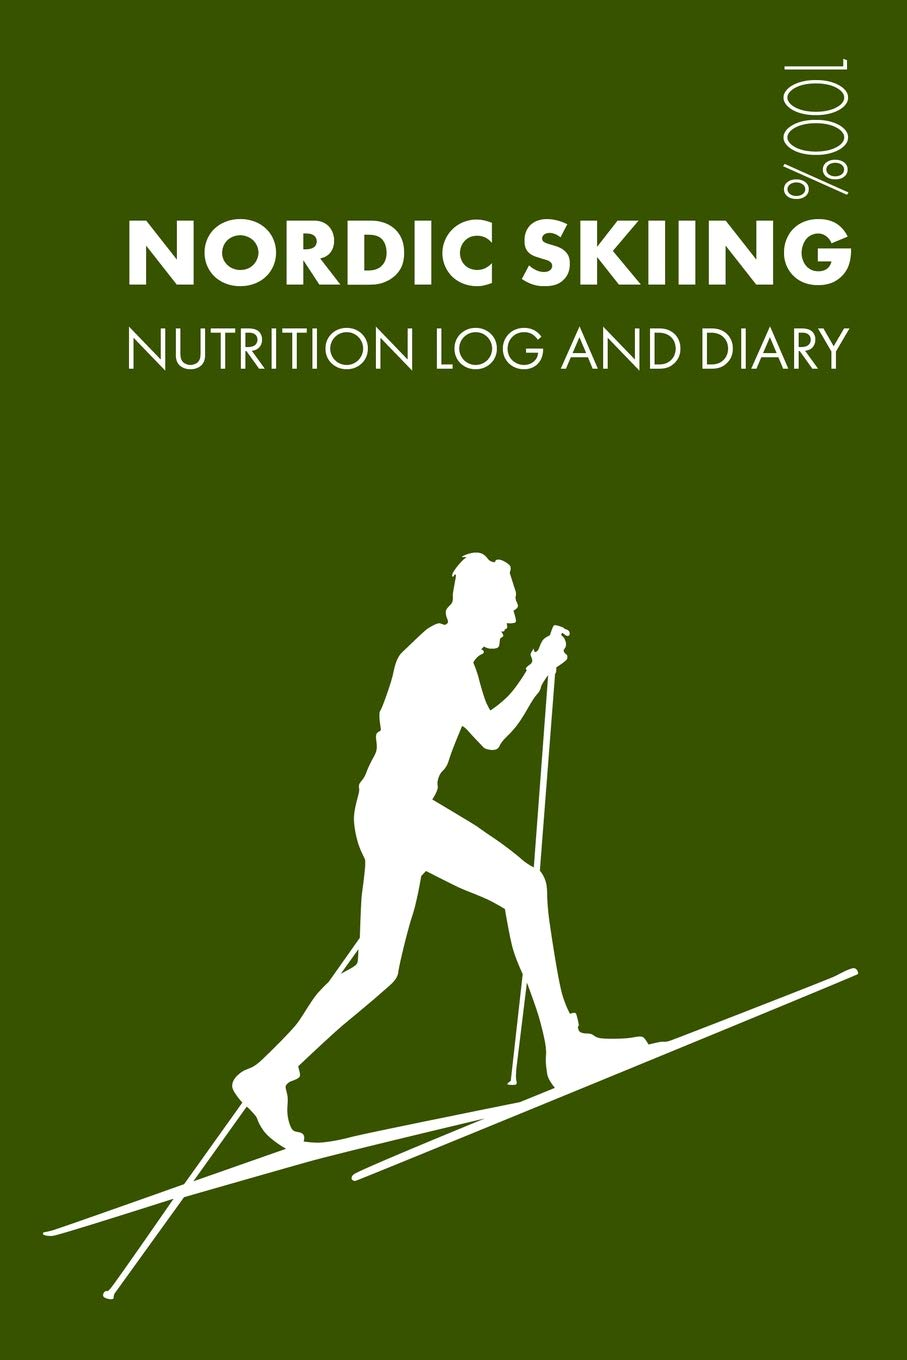 Nordic Skiing Sports Nutrition Journal: Daily Nordic Skiing Nutrition Log and Diary For Skier and Coach por Elegant Notebooks